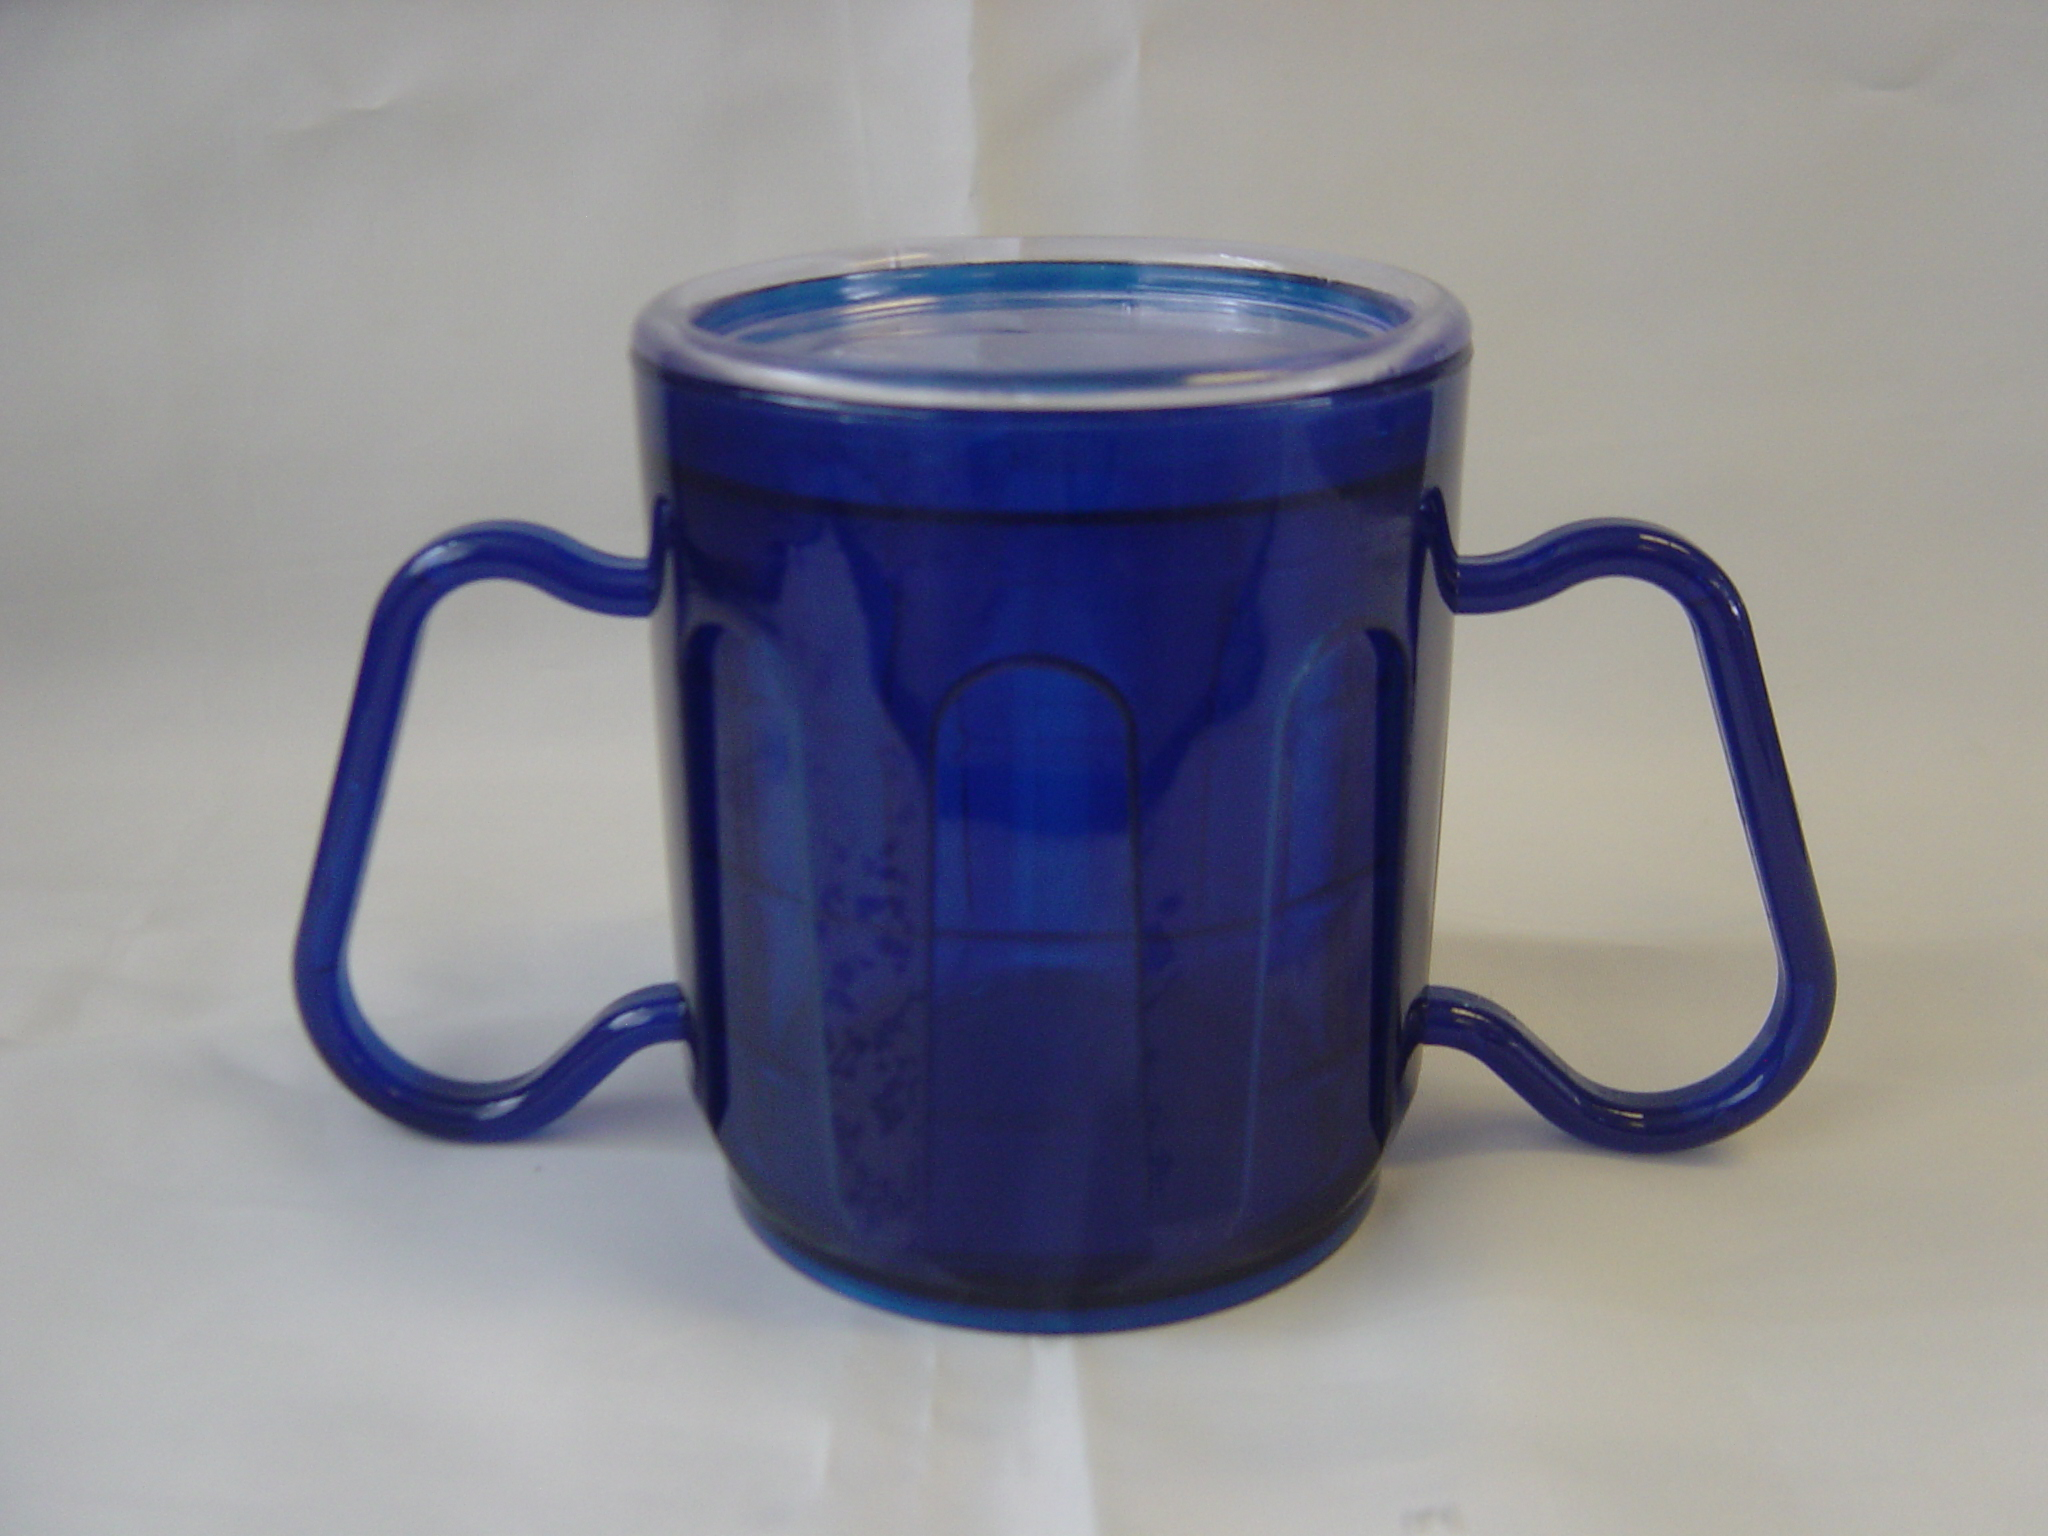 MEDECI SYSTEM CUP - BLUE